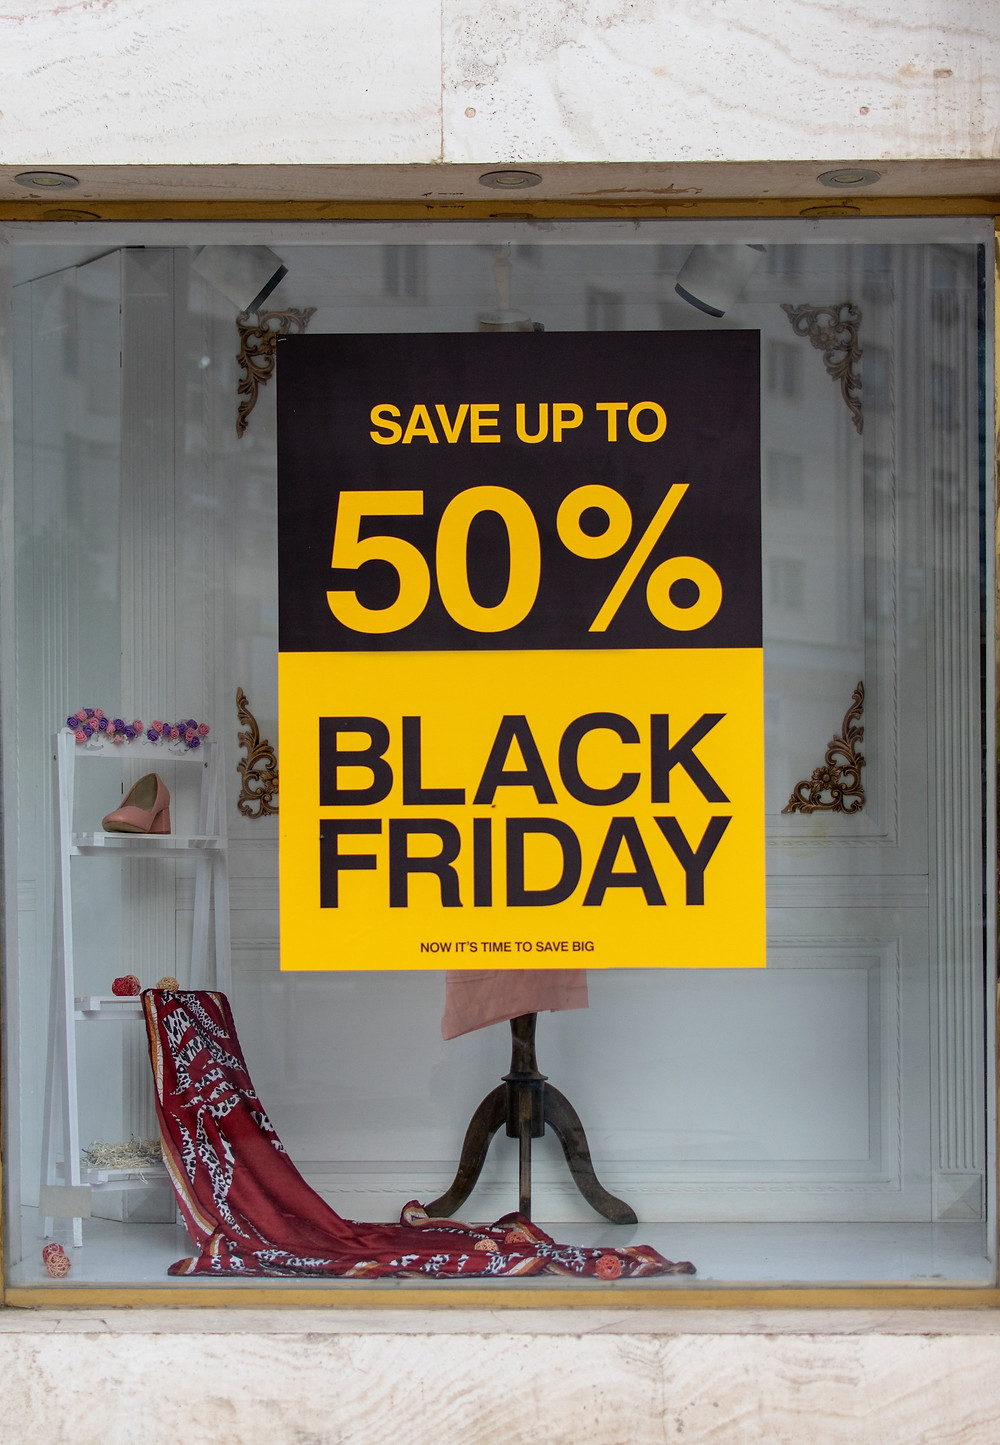 Black Friday Save up to 50 %. Black Firday Spending Volume . Black Friday a market of $50.9 Billion . Black Friday 2020 Offers . Blog post about the Black Friday 2020 that it is going to be one of the weirdest Black Friday of the recent history due to the situation with the Corona Virus . As usual in our website you will find many useful information, software, book and reports and of course lot of Offers !